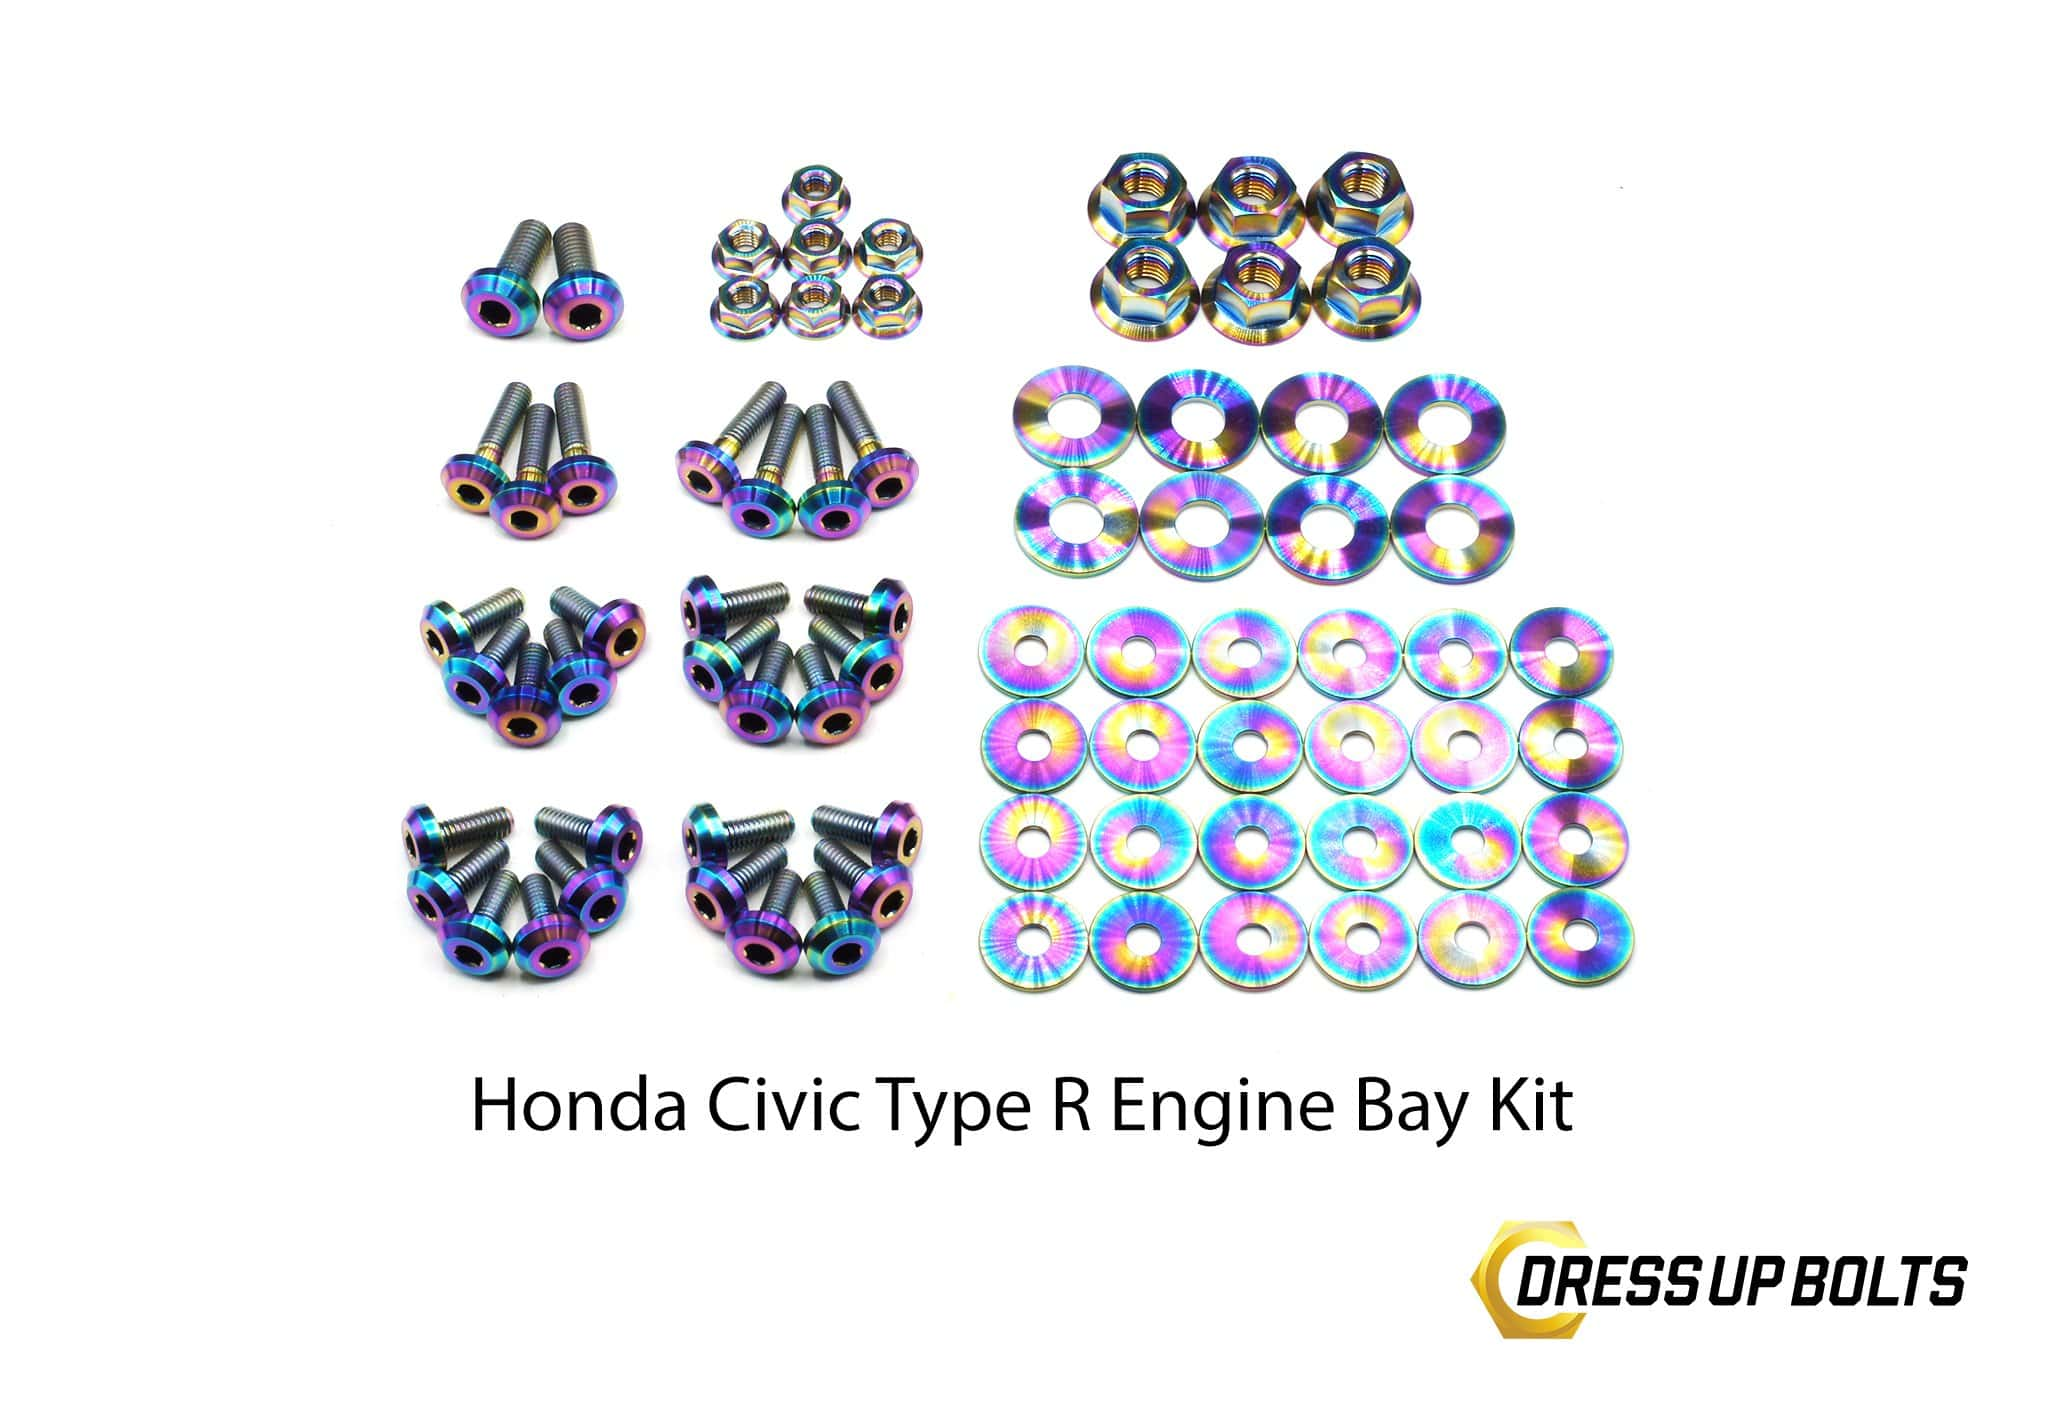 Honda Civic Type R (2017-2019) Titanium Dress Up Bolt Full Engine Bay Kit - DressUpBolts.com